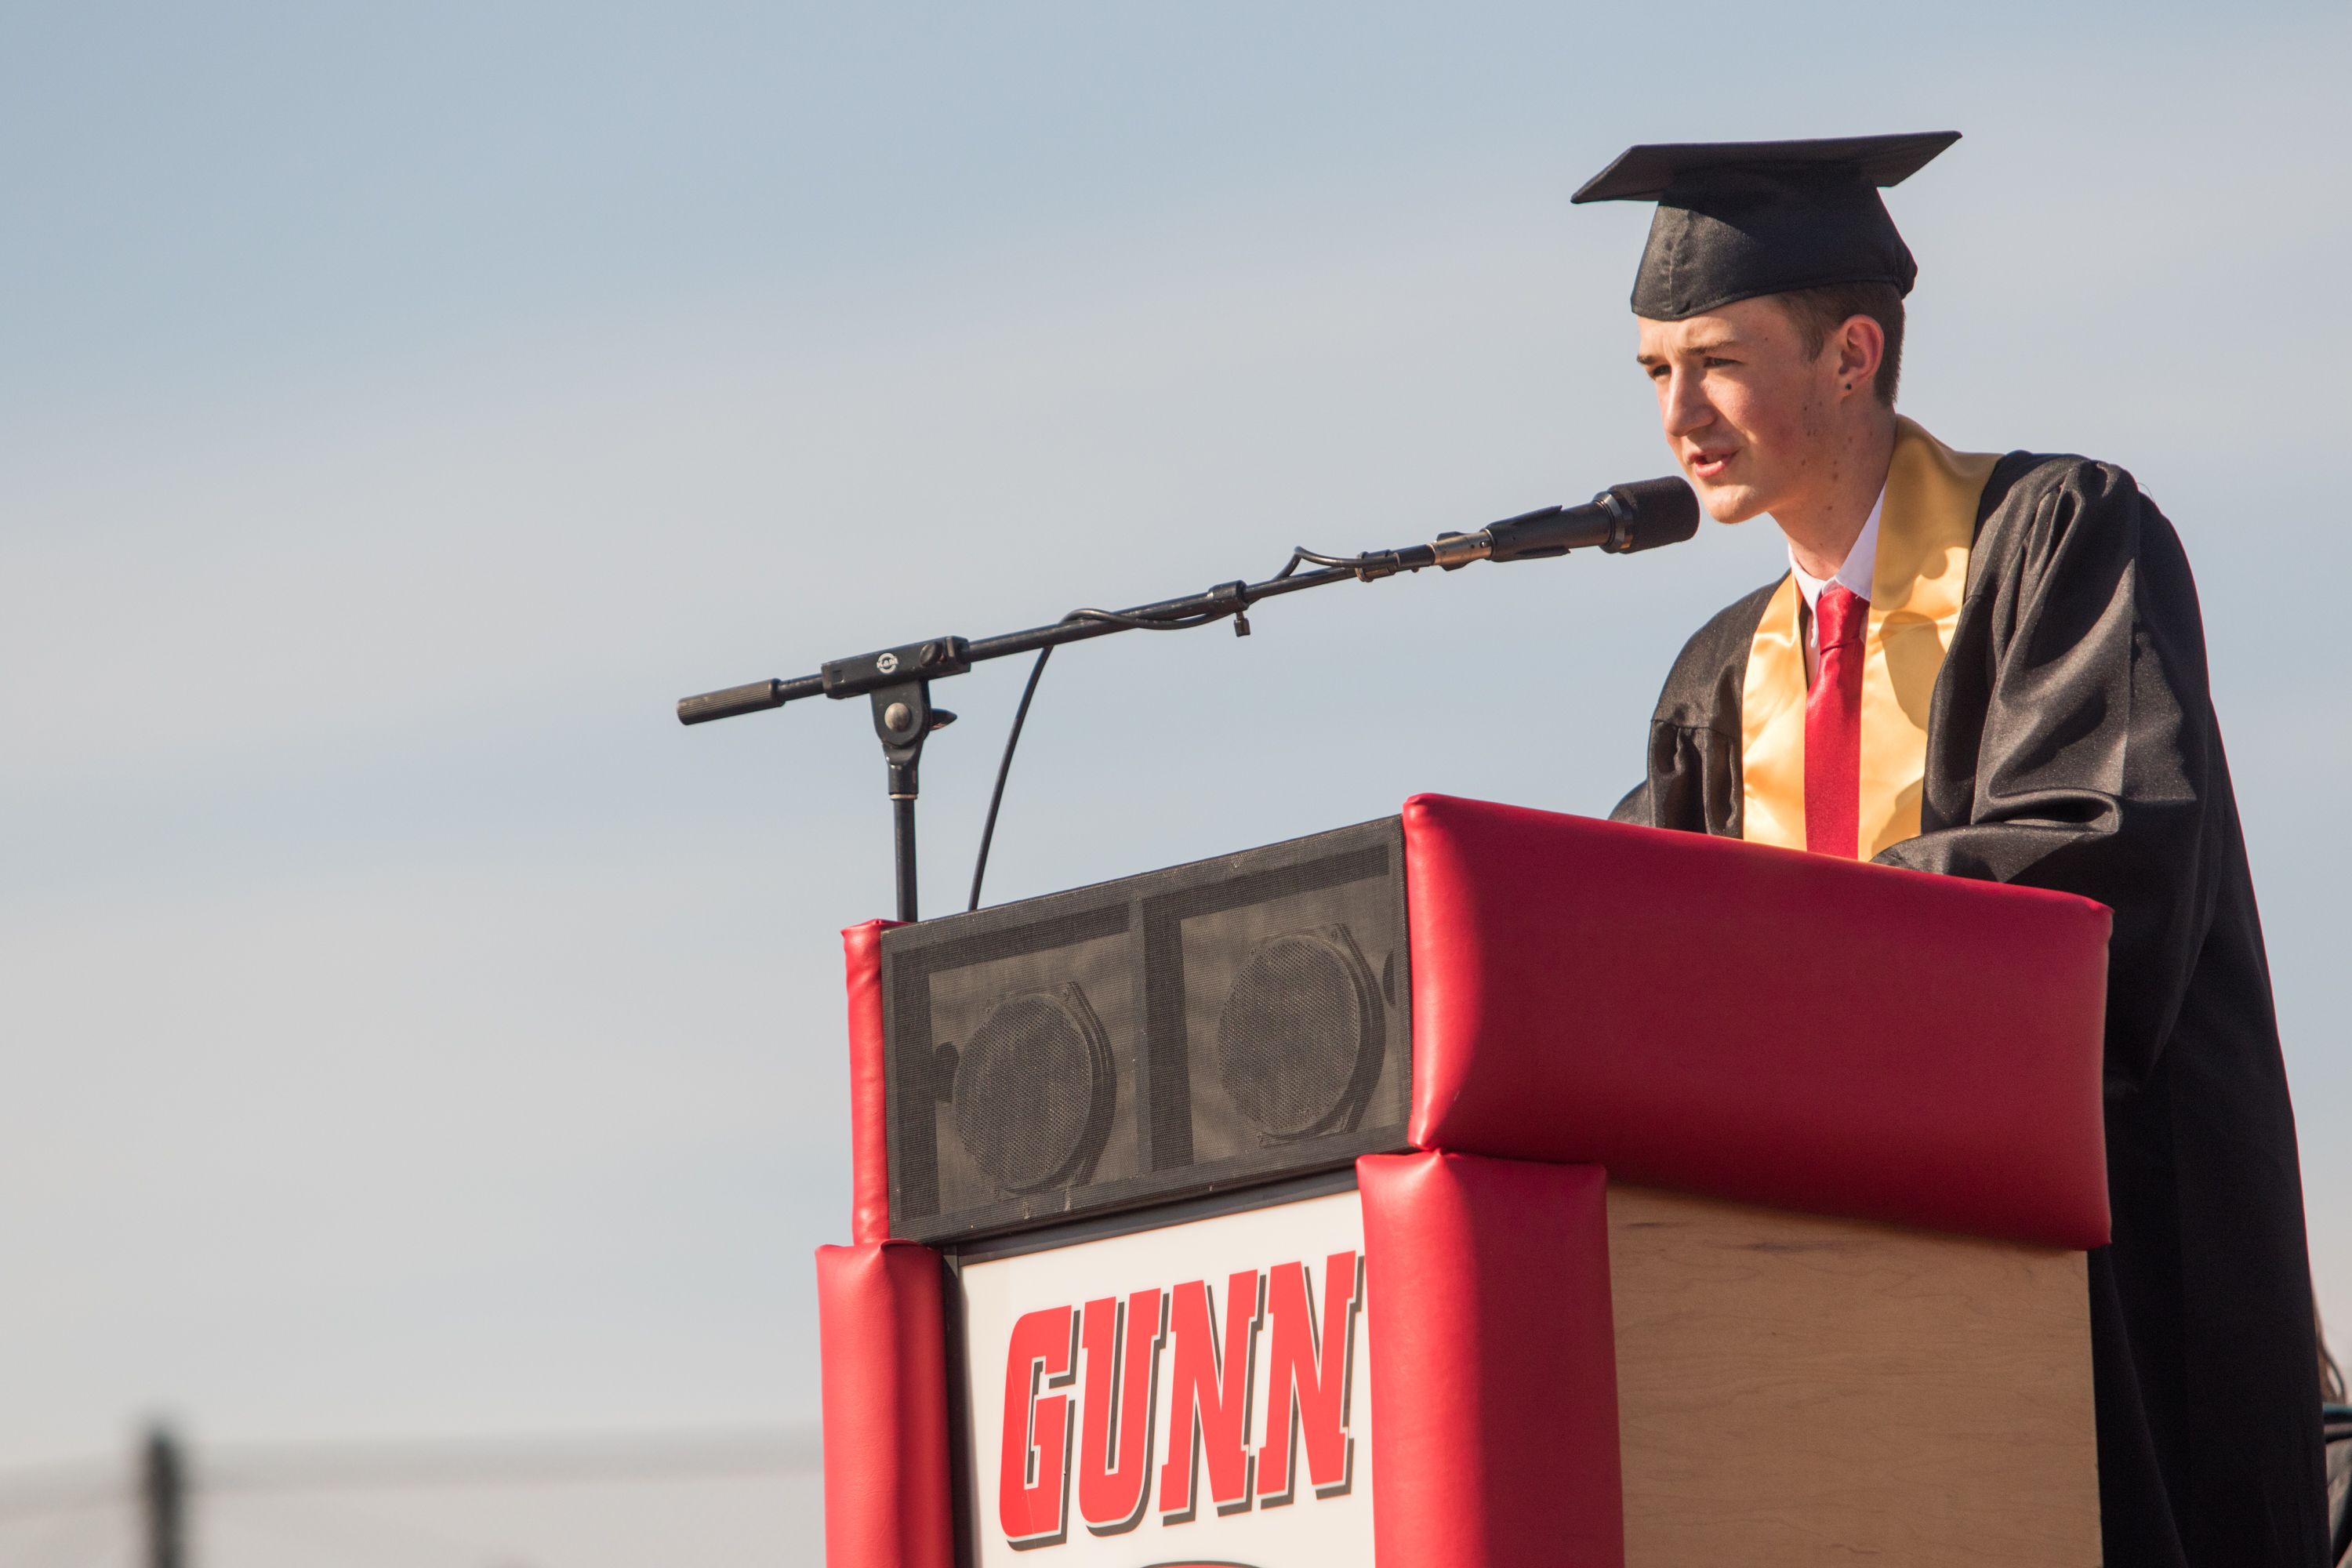 Gunn High School senior Jimmy Farley speaks about insecurity and mental health stigma at commencement.